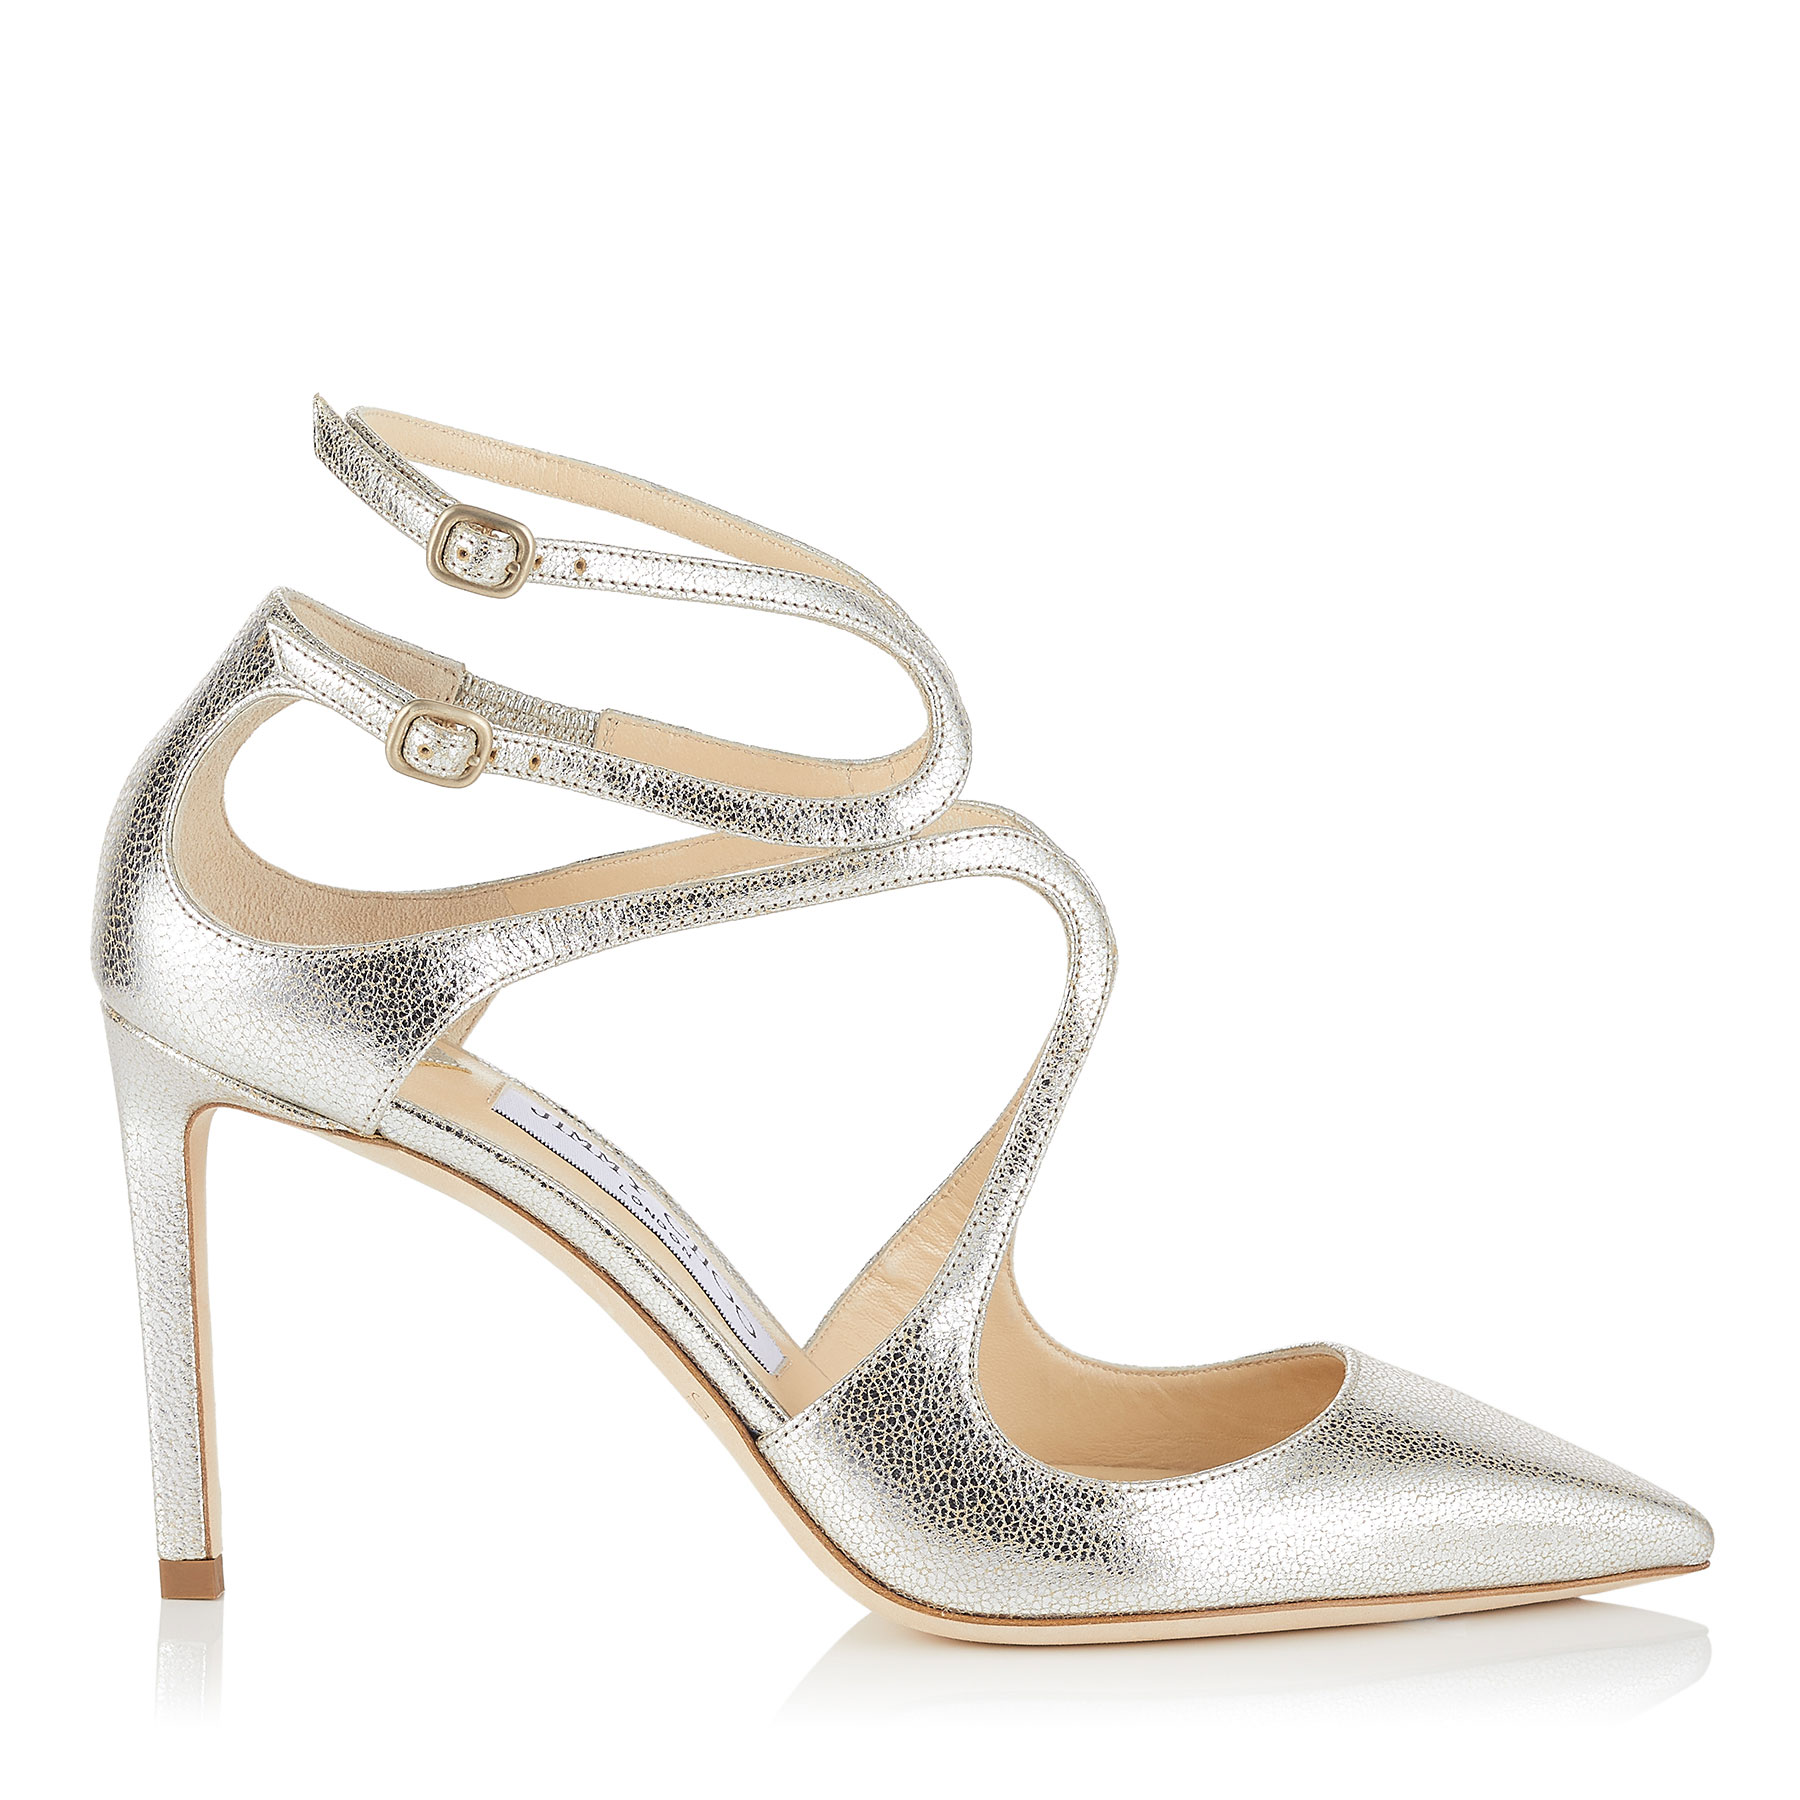 LANCER 85 Champagne Glitter Leather Pointy Toe Pumps by Jimmy Choo